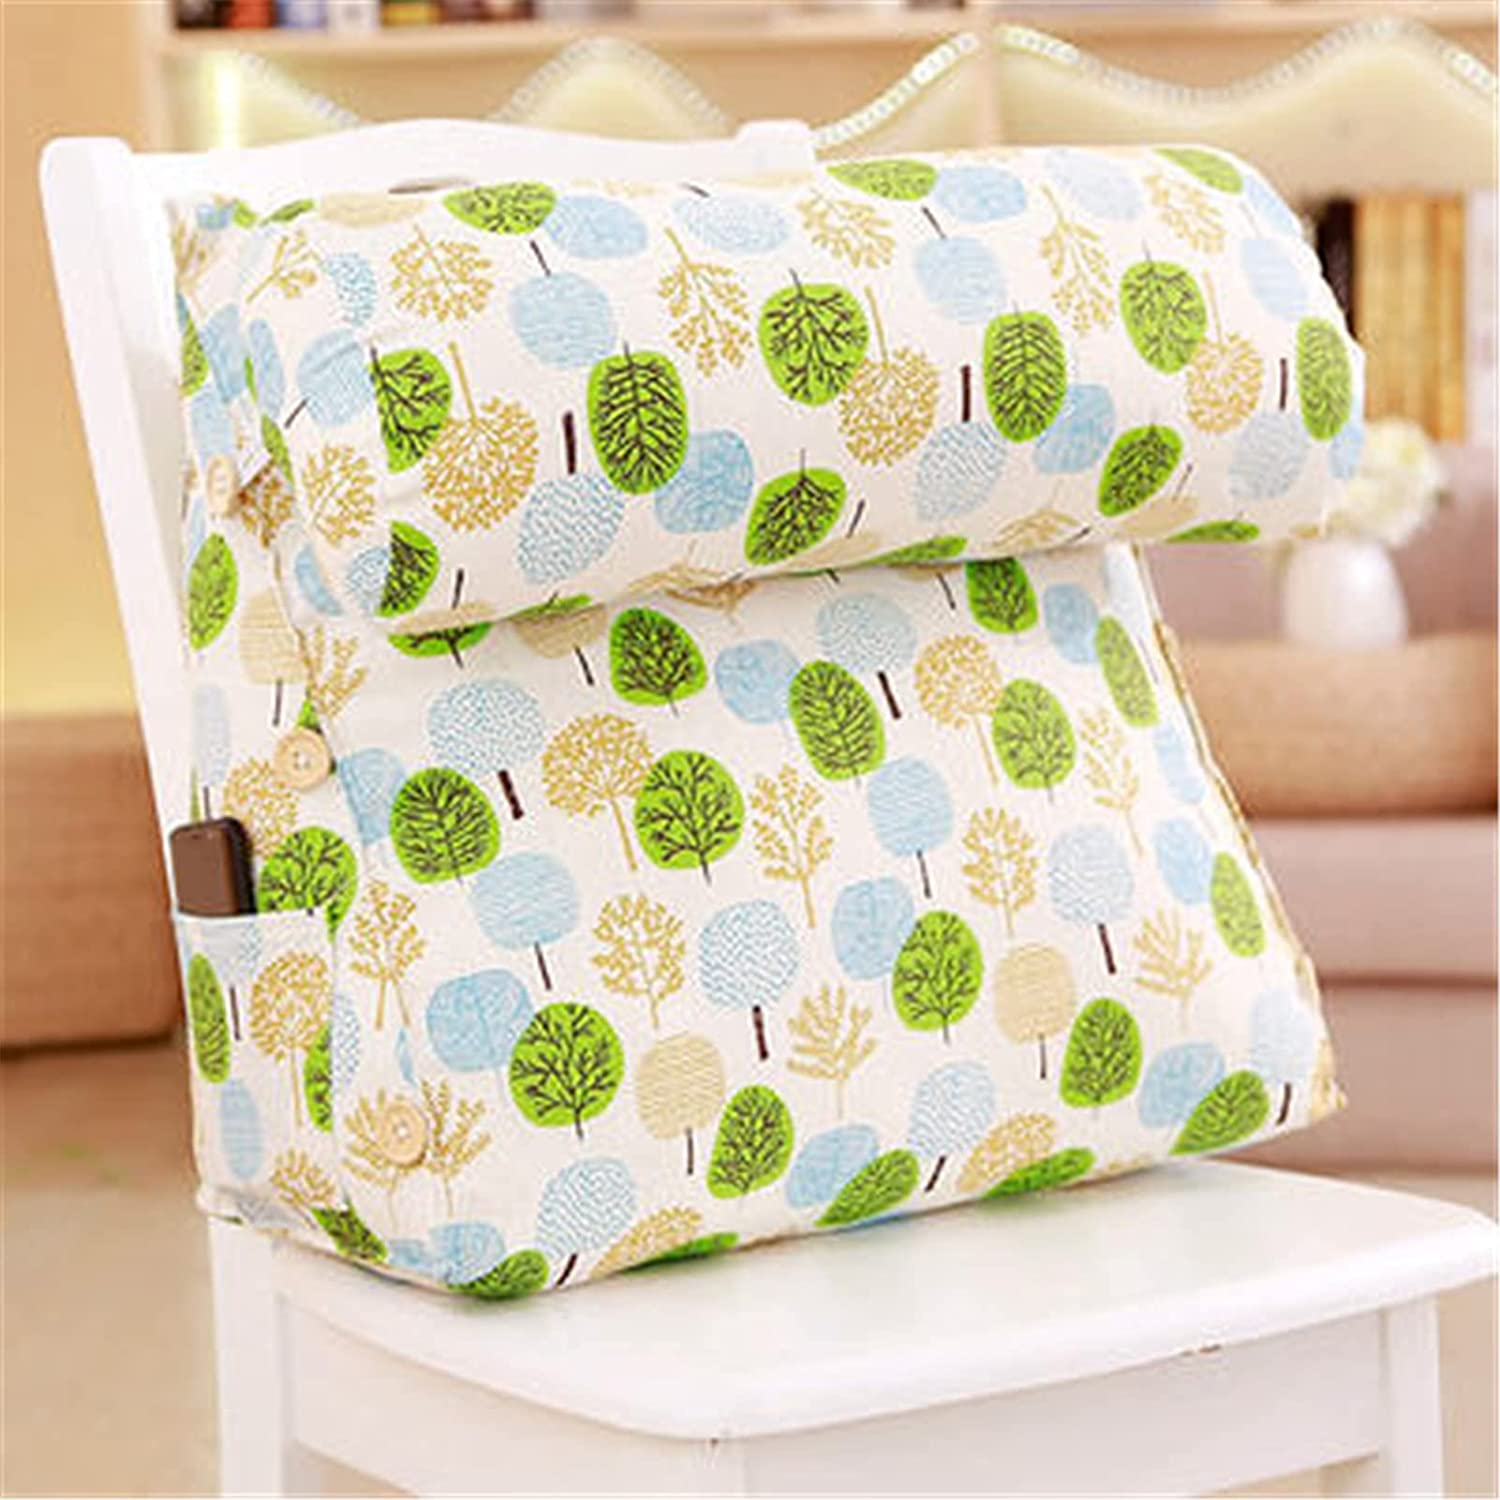 Triangular Wedge Max 54% OFF Cushion Max 61% OFF Comfortable Bed Rest Ad Pillows Reading